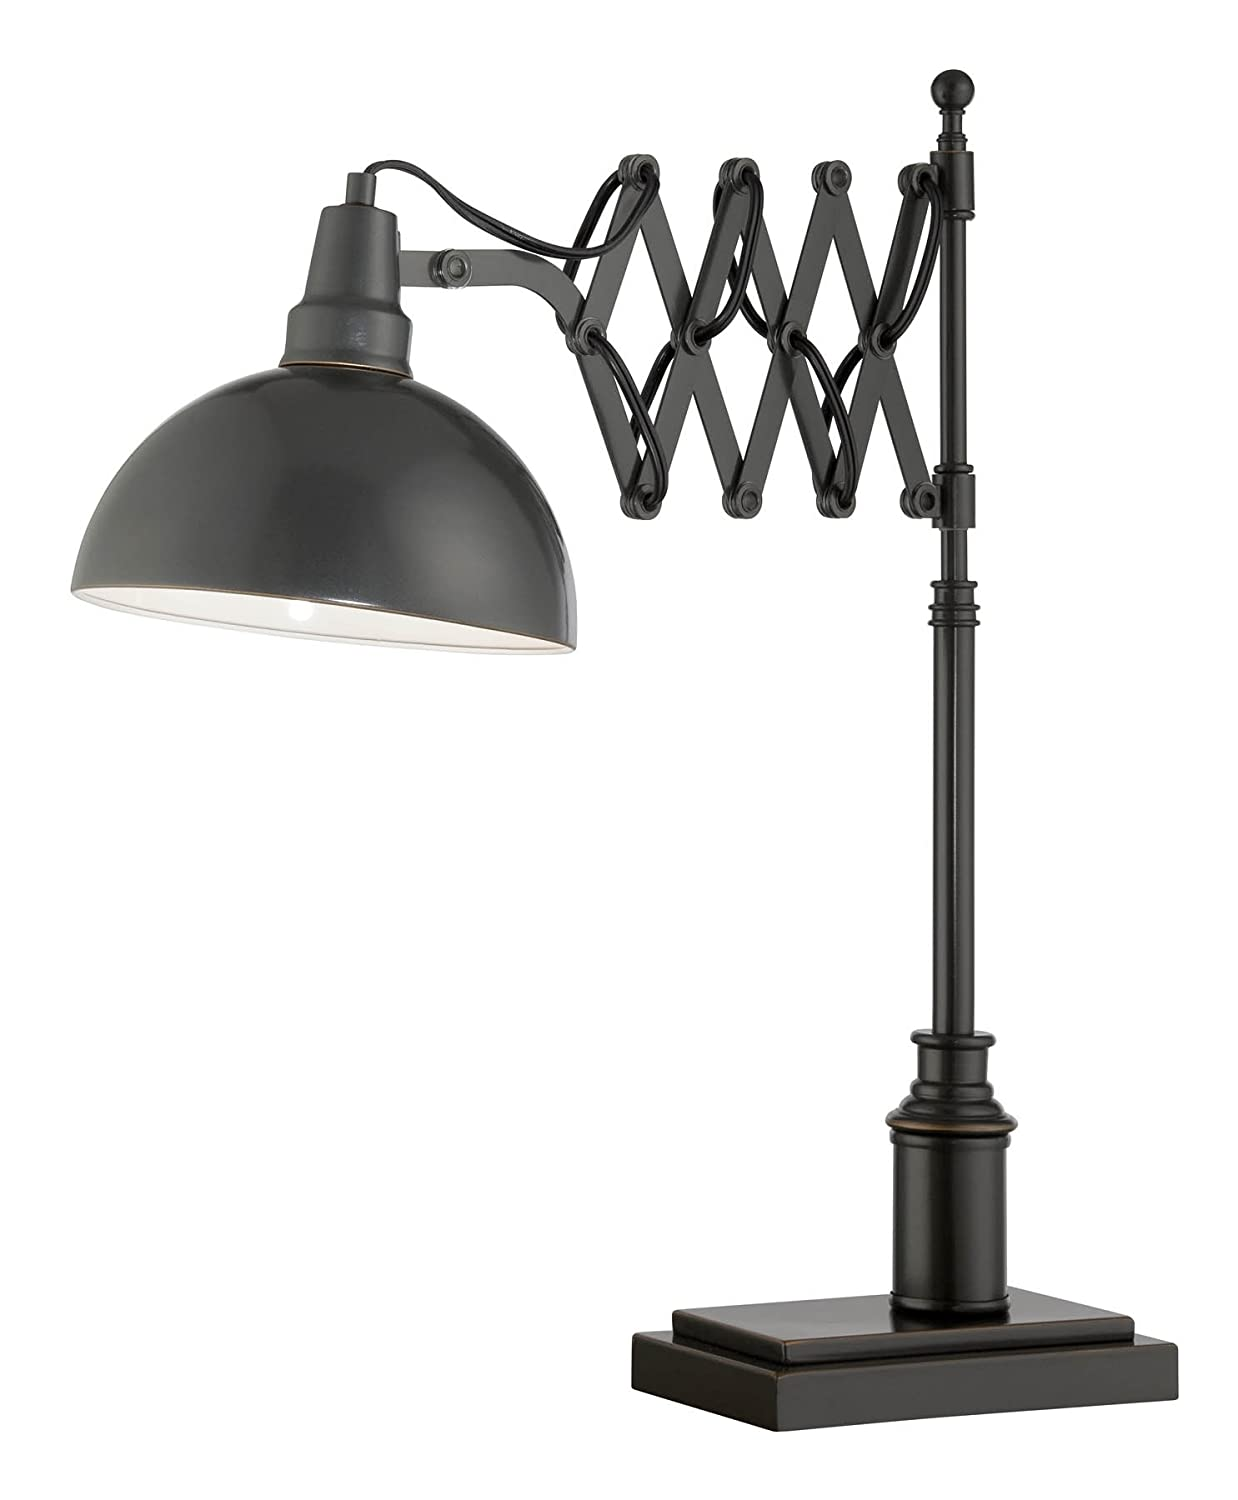 Contemporary Desk Lamps Office. Desk Lamps Office. Office L Contemporary